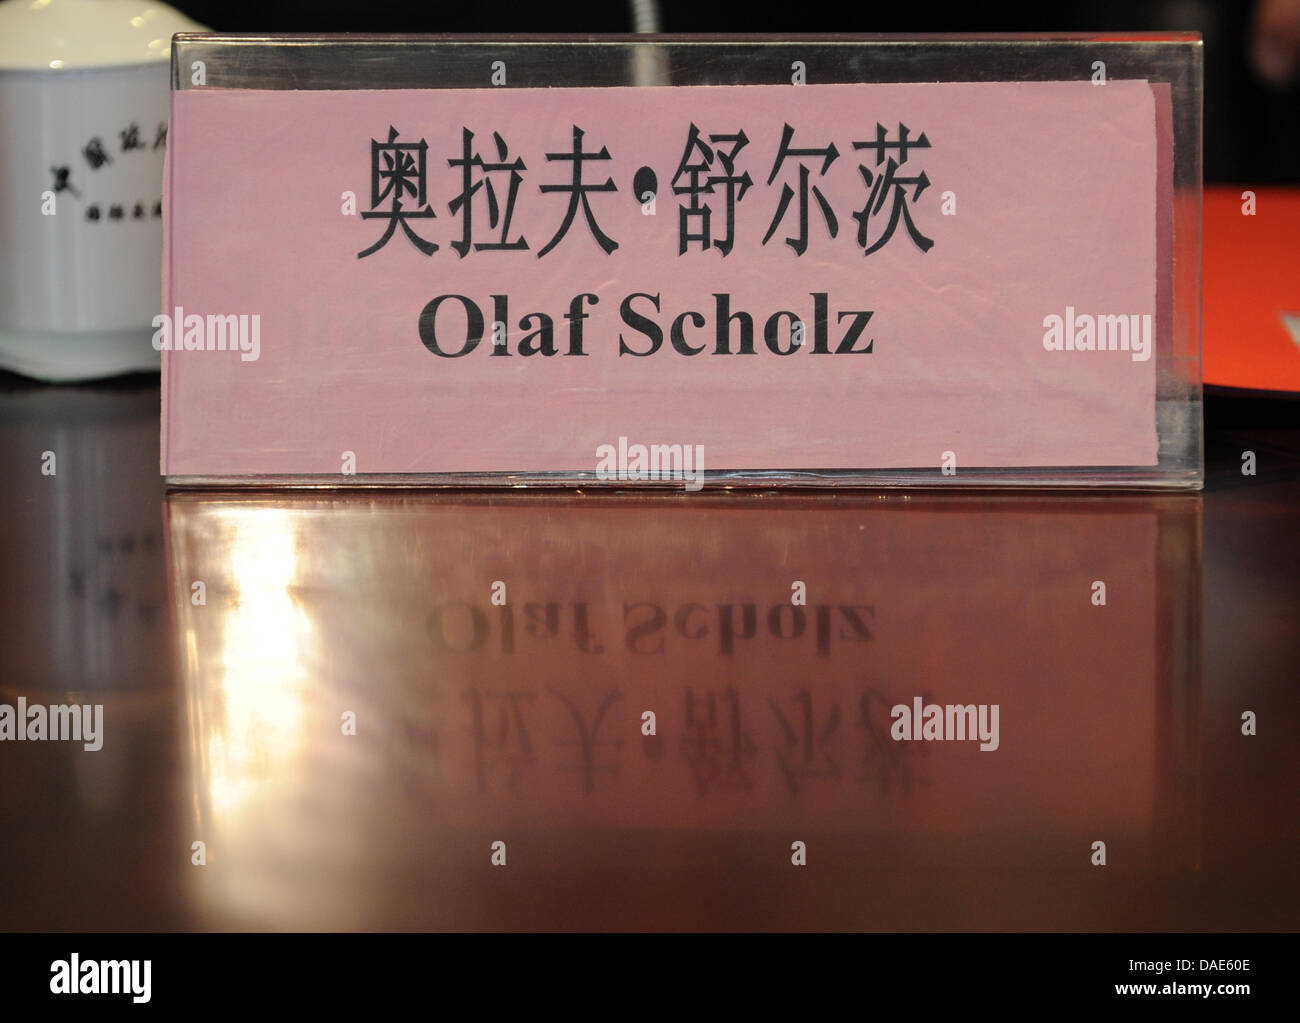 The name of Hamburg's first mayor Olaf Scholz is written on